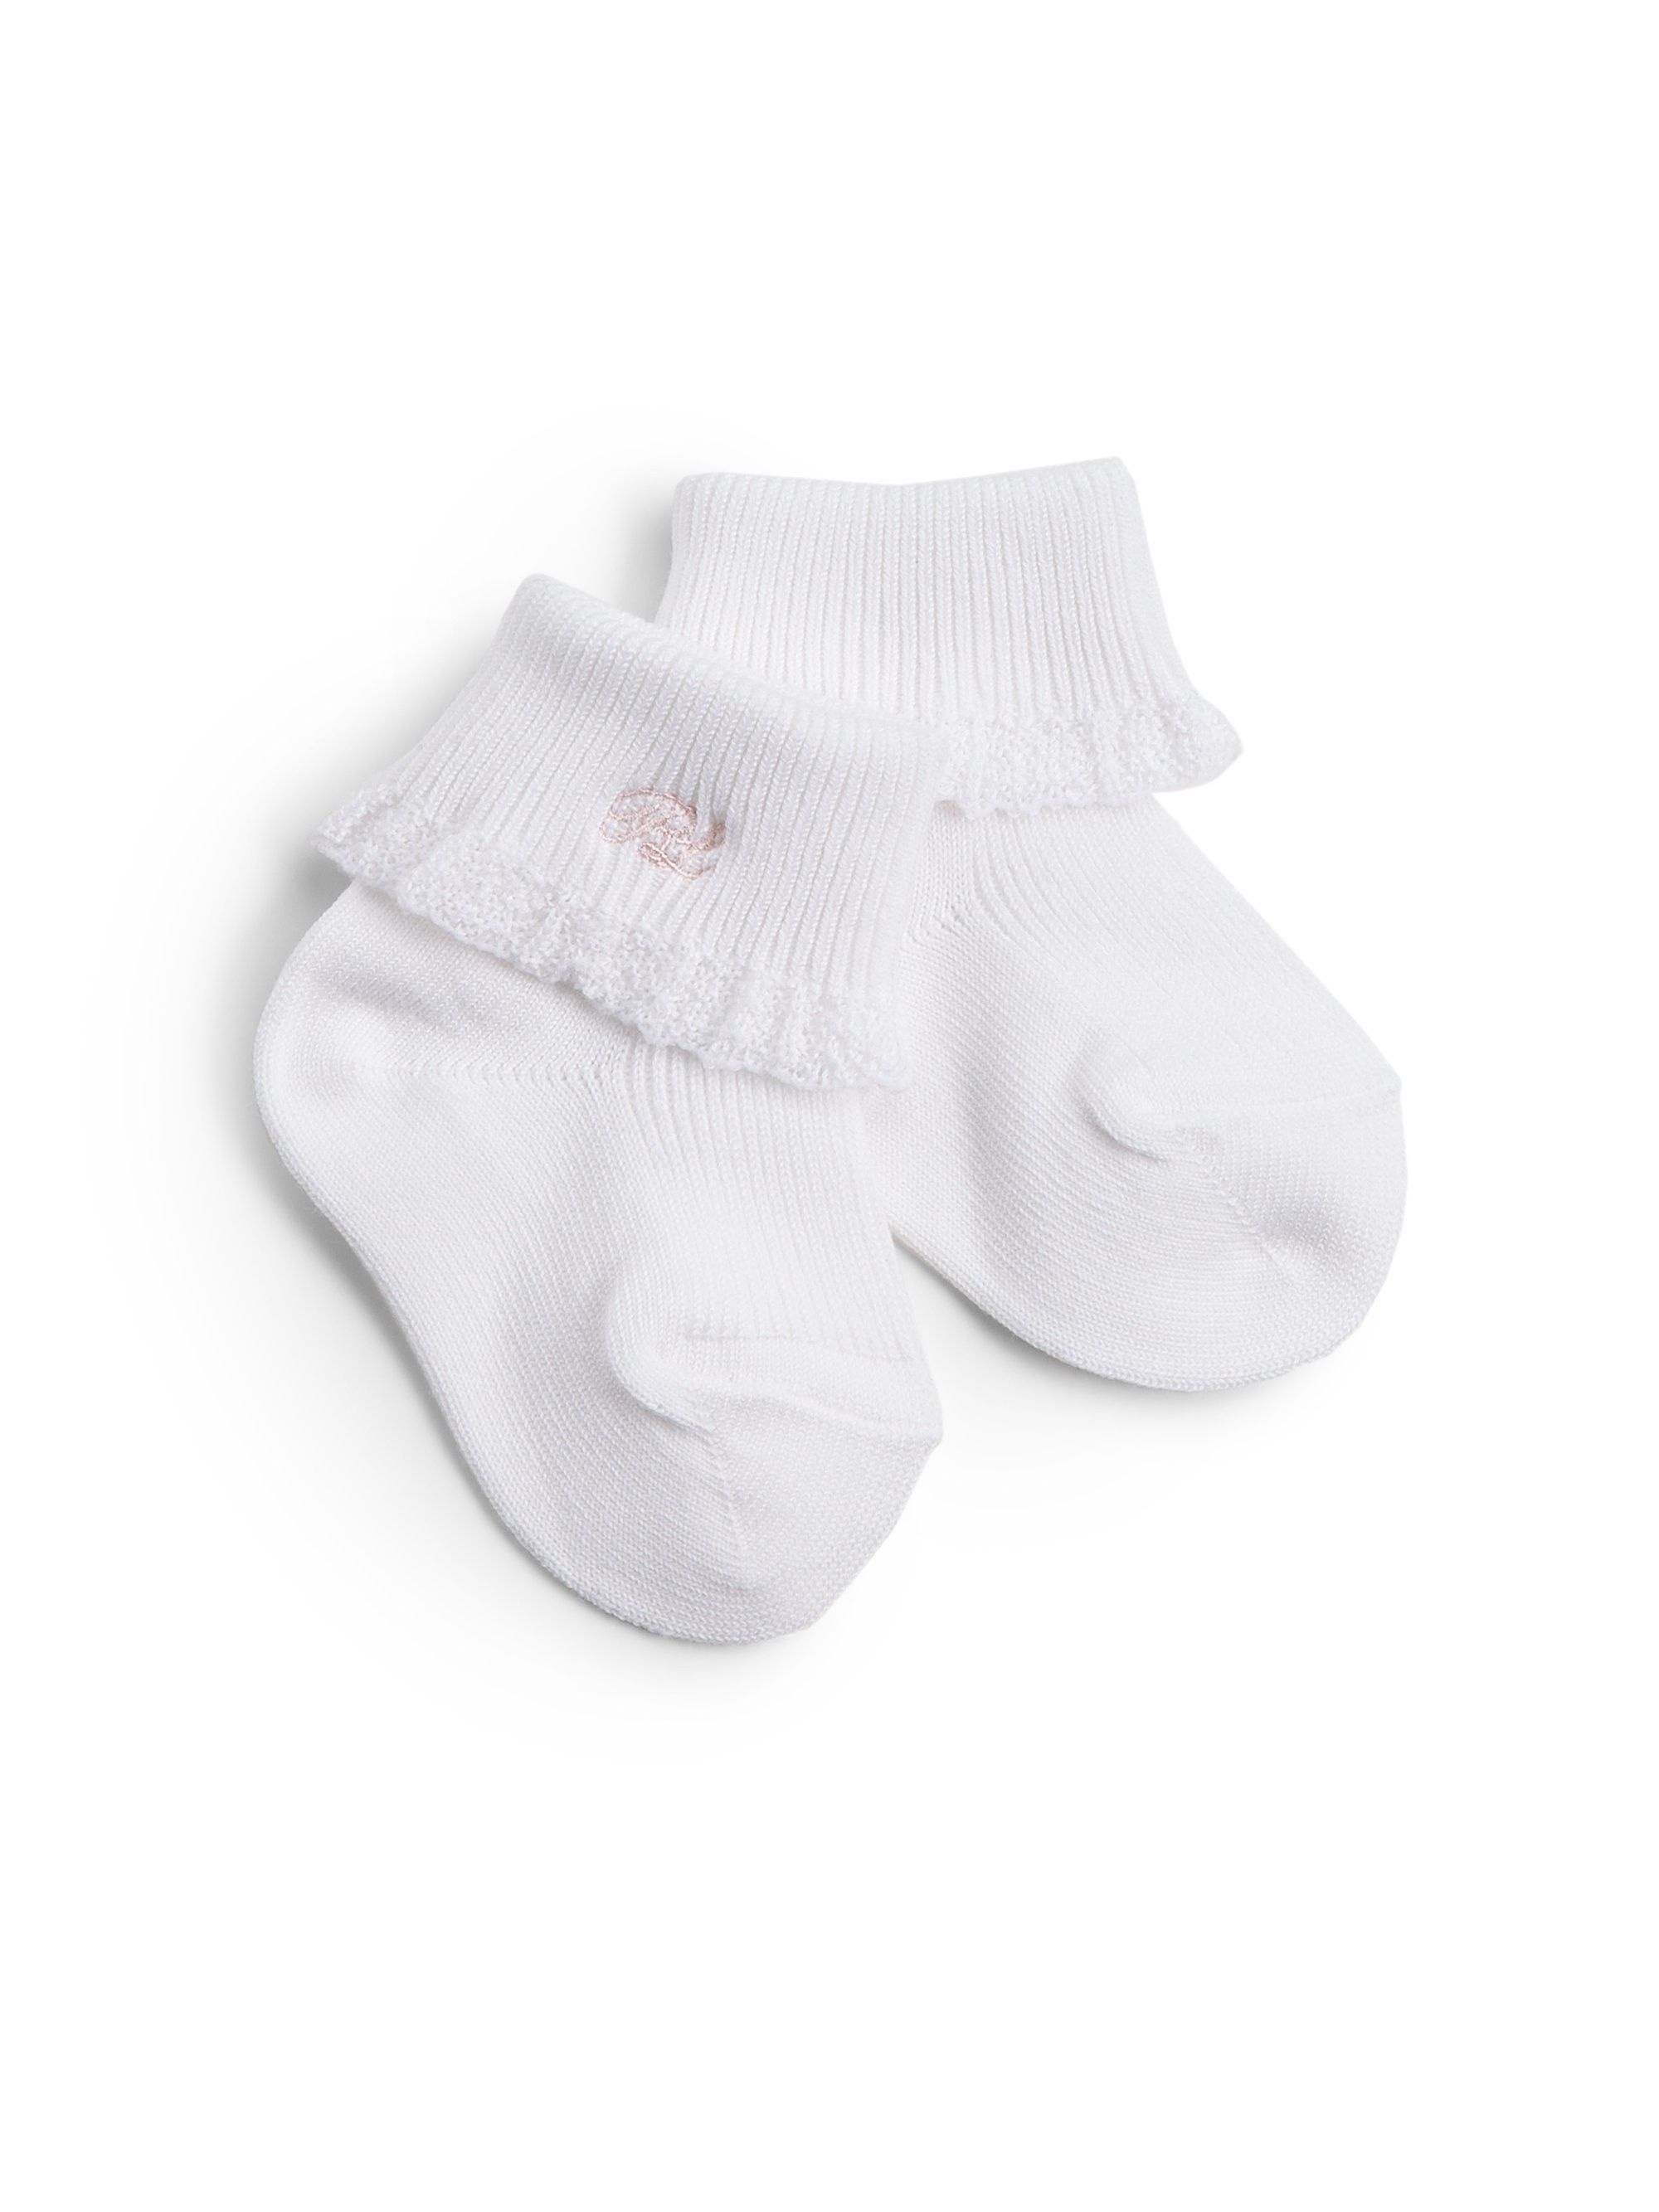 Ralph Lauren Baby s Lace Trimmed Cotton Socks Pink 0 6 Months